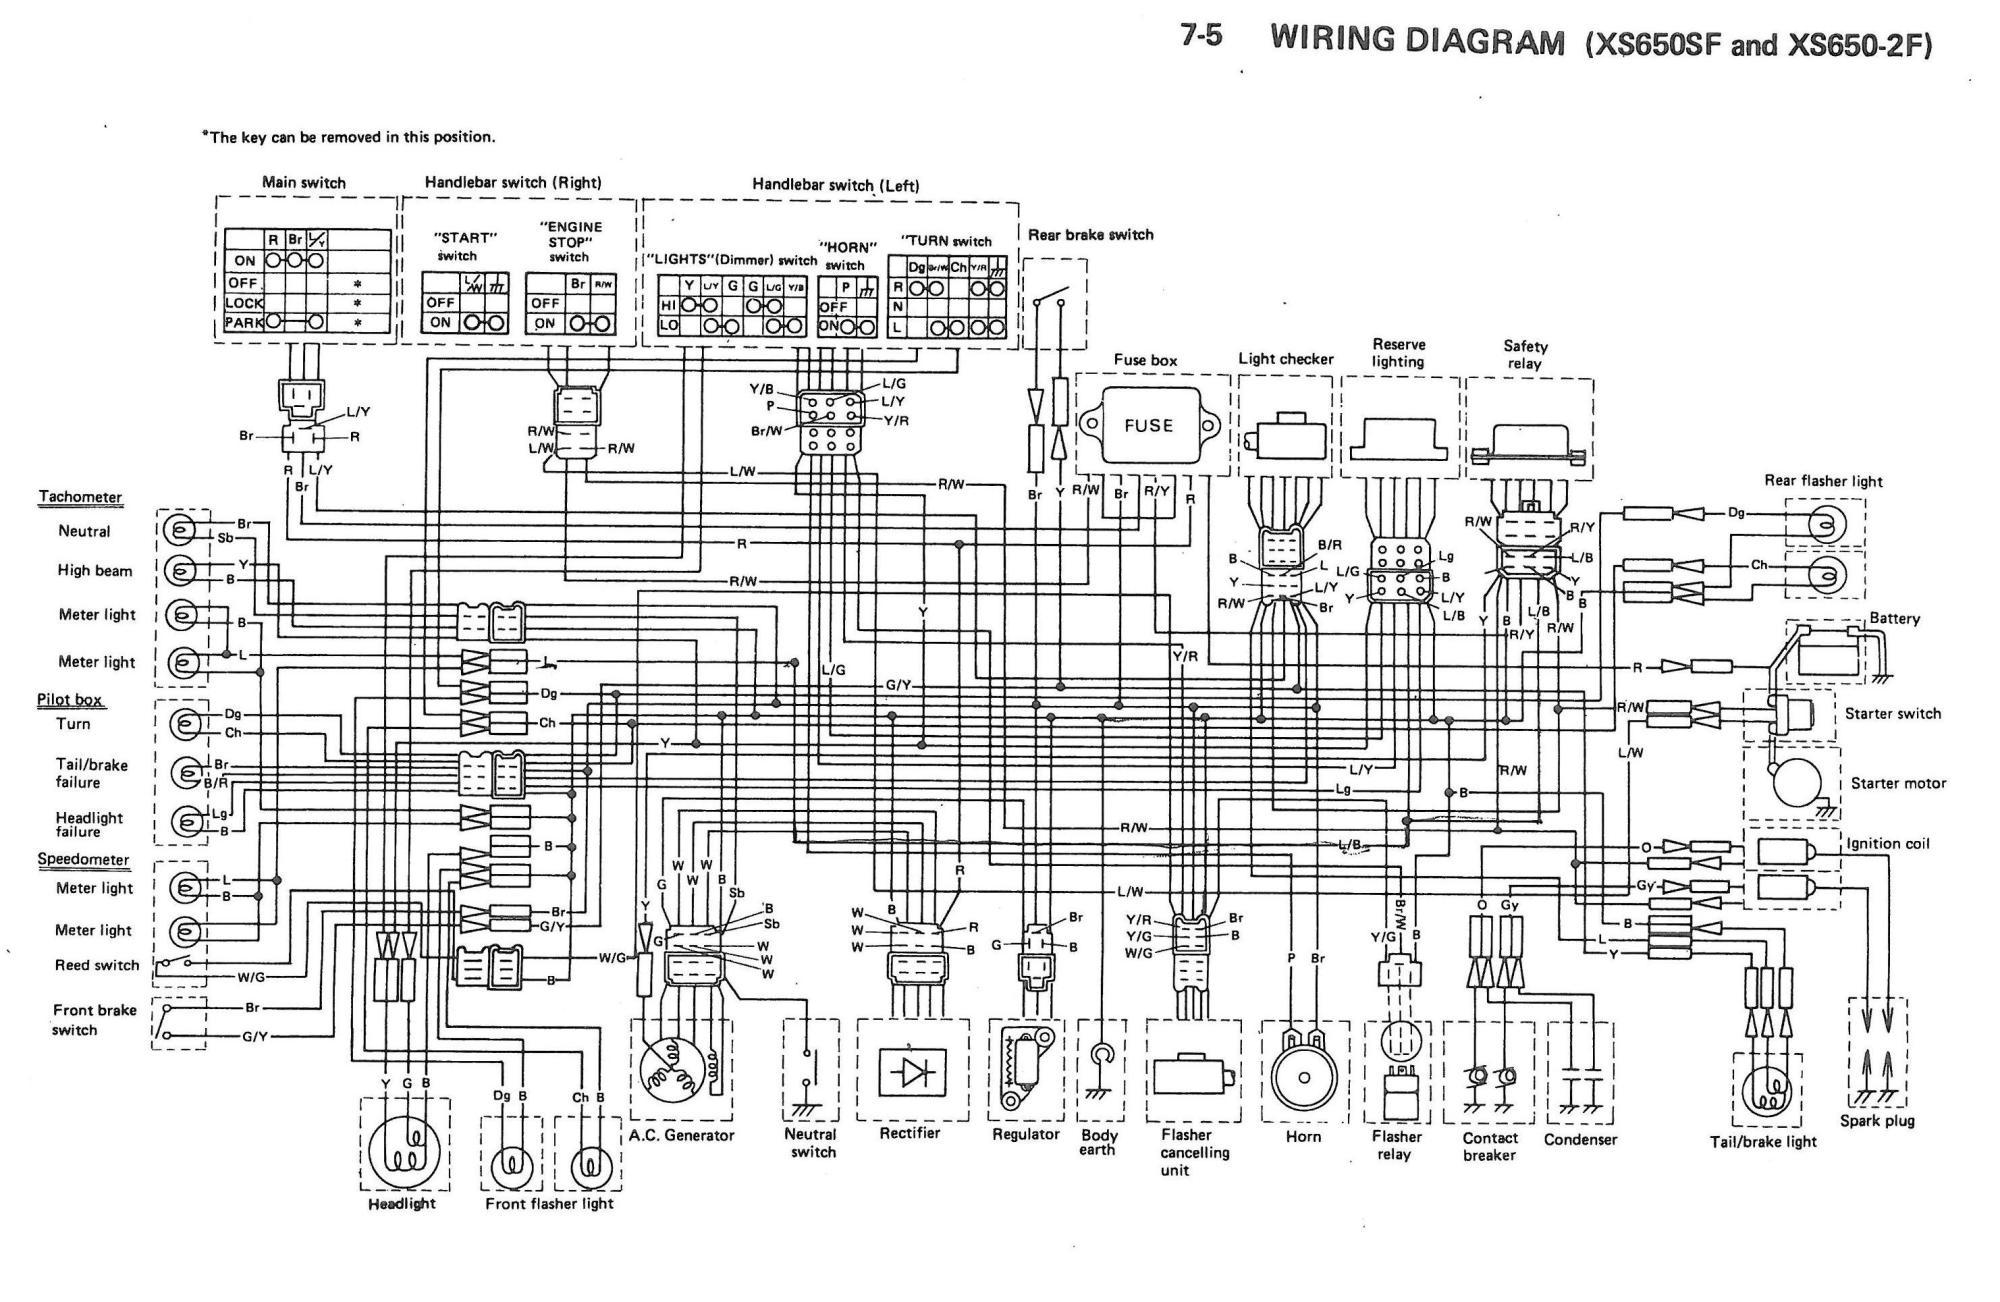 hight resolution of xs850 wiring diagram wiring diagram specialtiesdiagram yamaha xs650 together with 1982 suzuki gs 750 wiring diagram